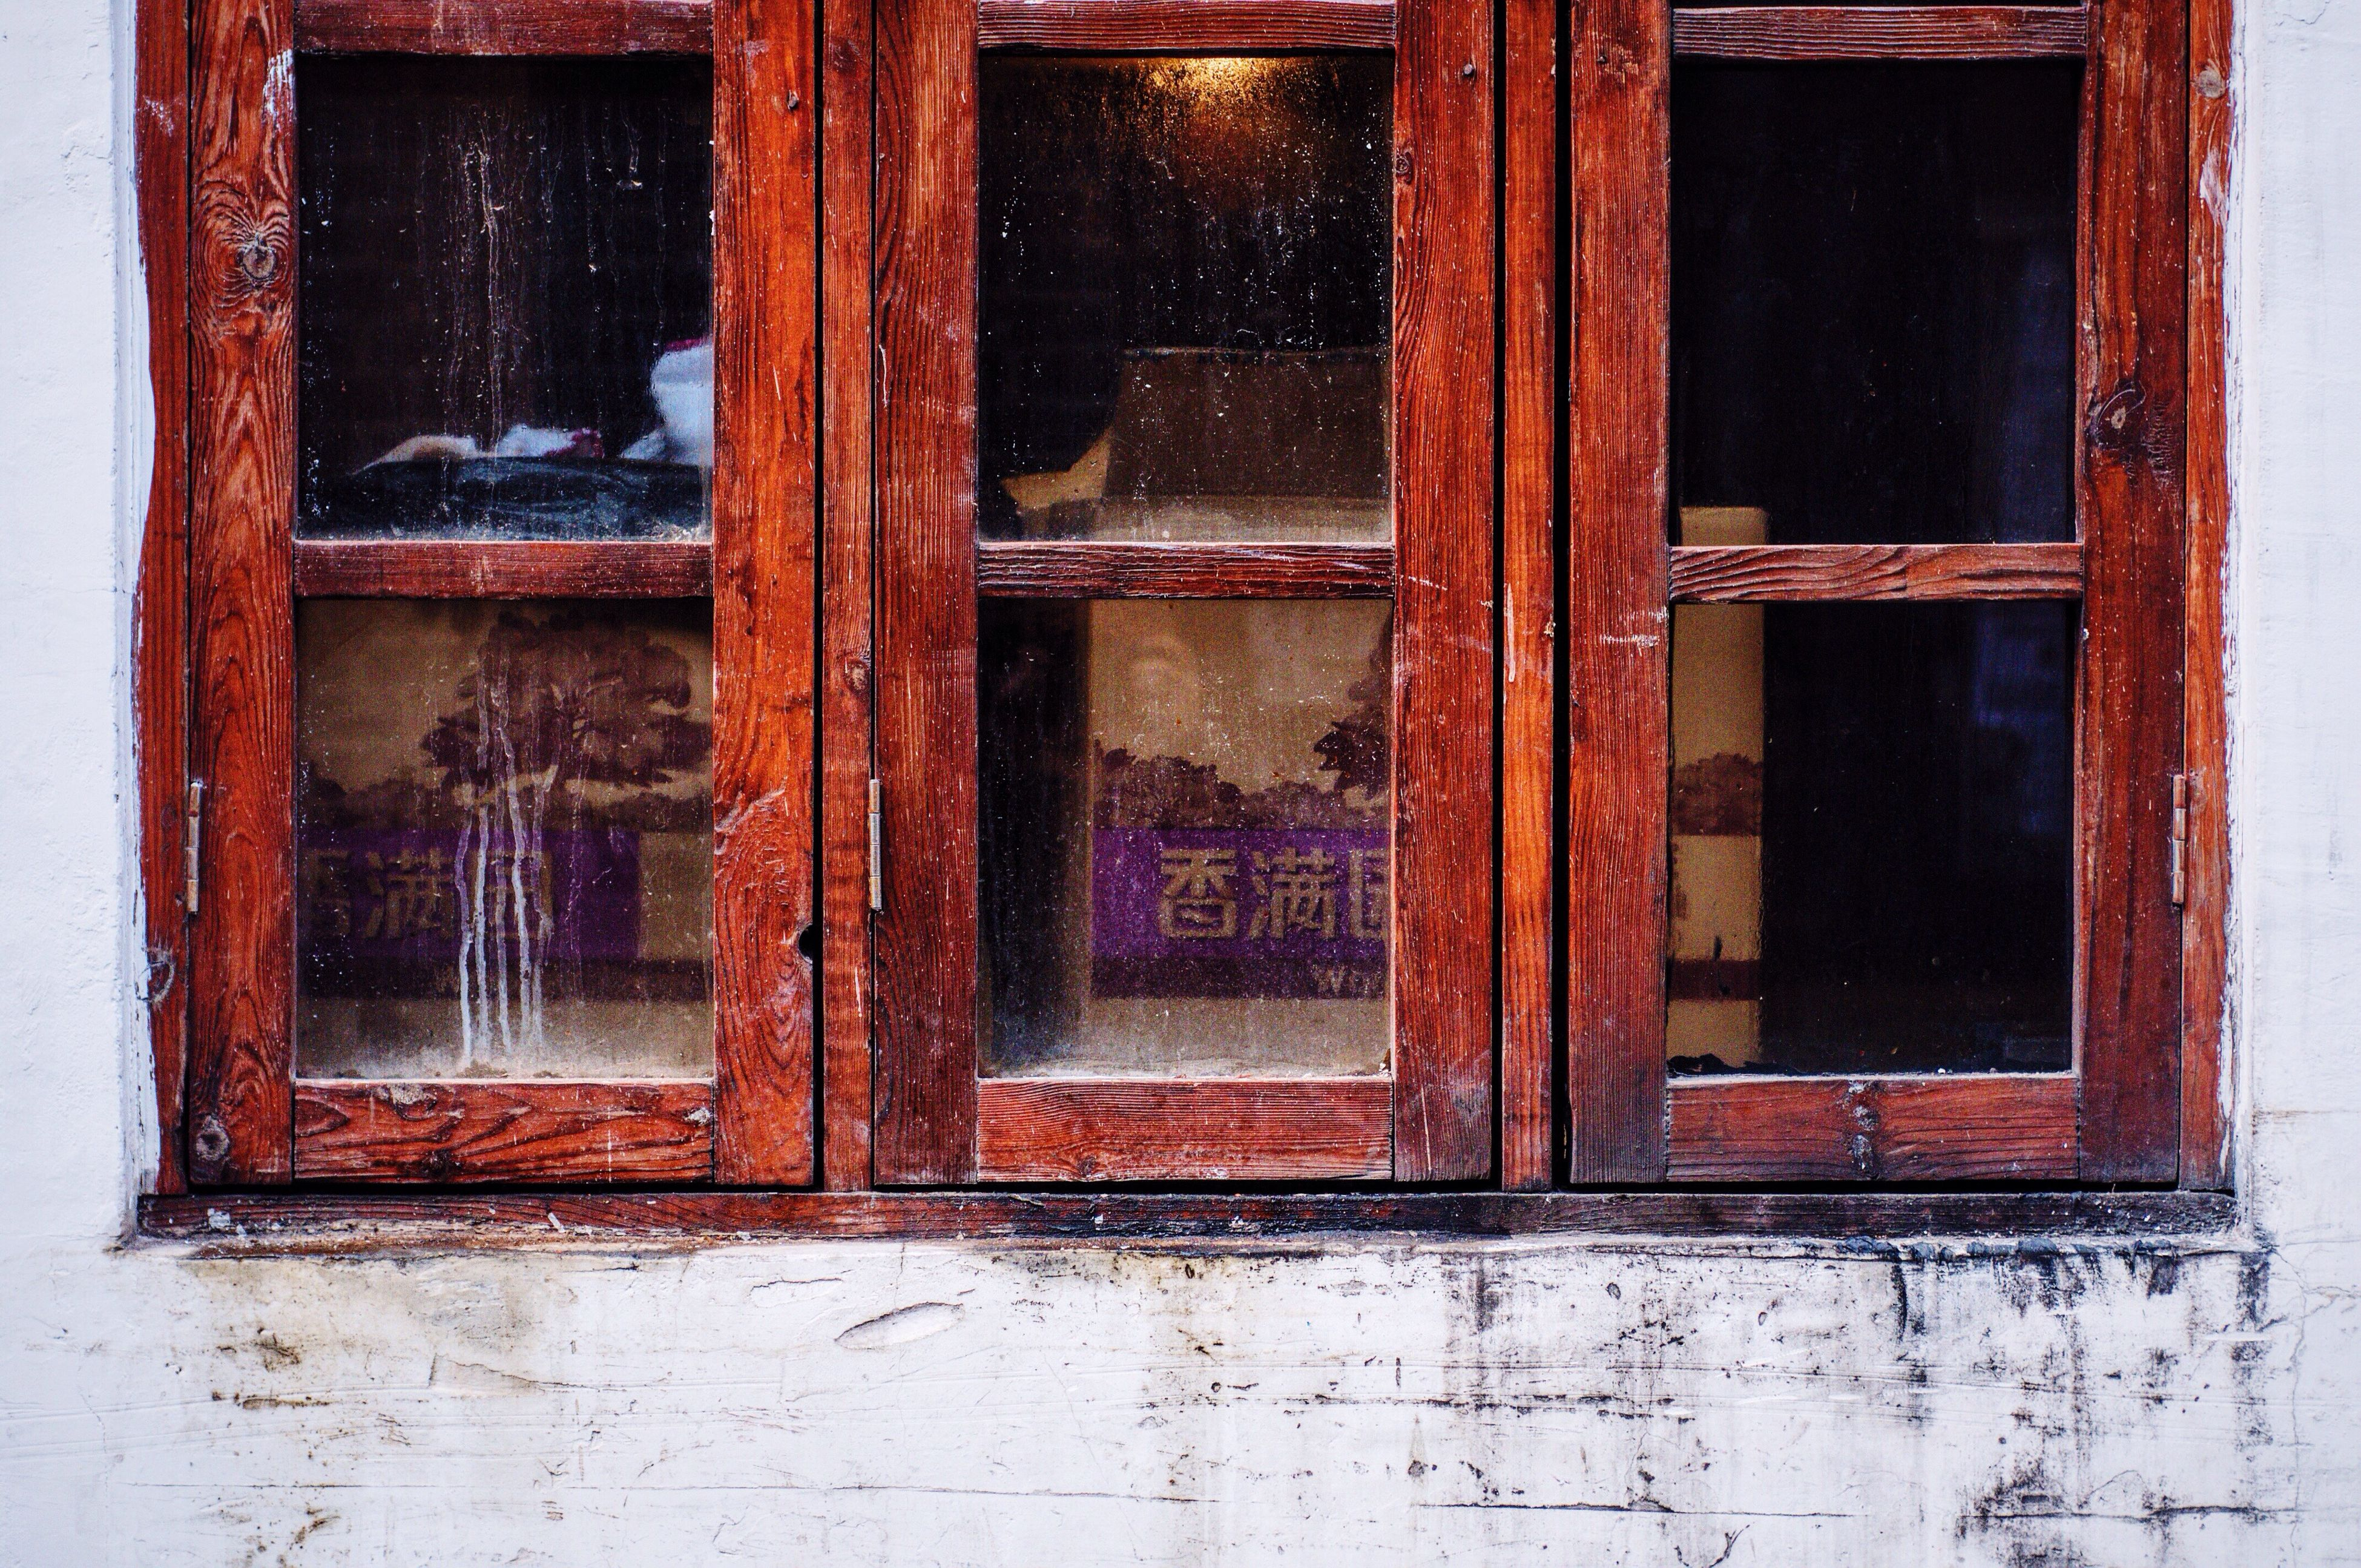 window, building exterior, built structure, architecture, door, closed, house, old, safety, protection, wood - material, residential structure, full frame, security, weathered, glass - material, residential building, entrance, outdoors, day